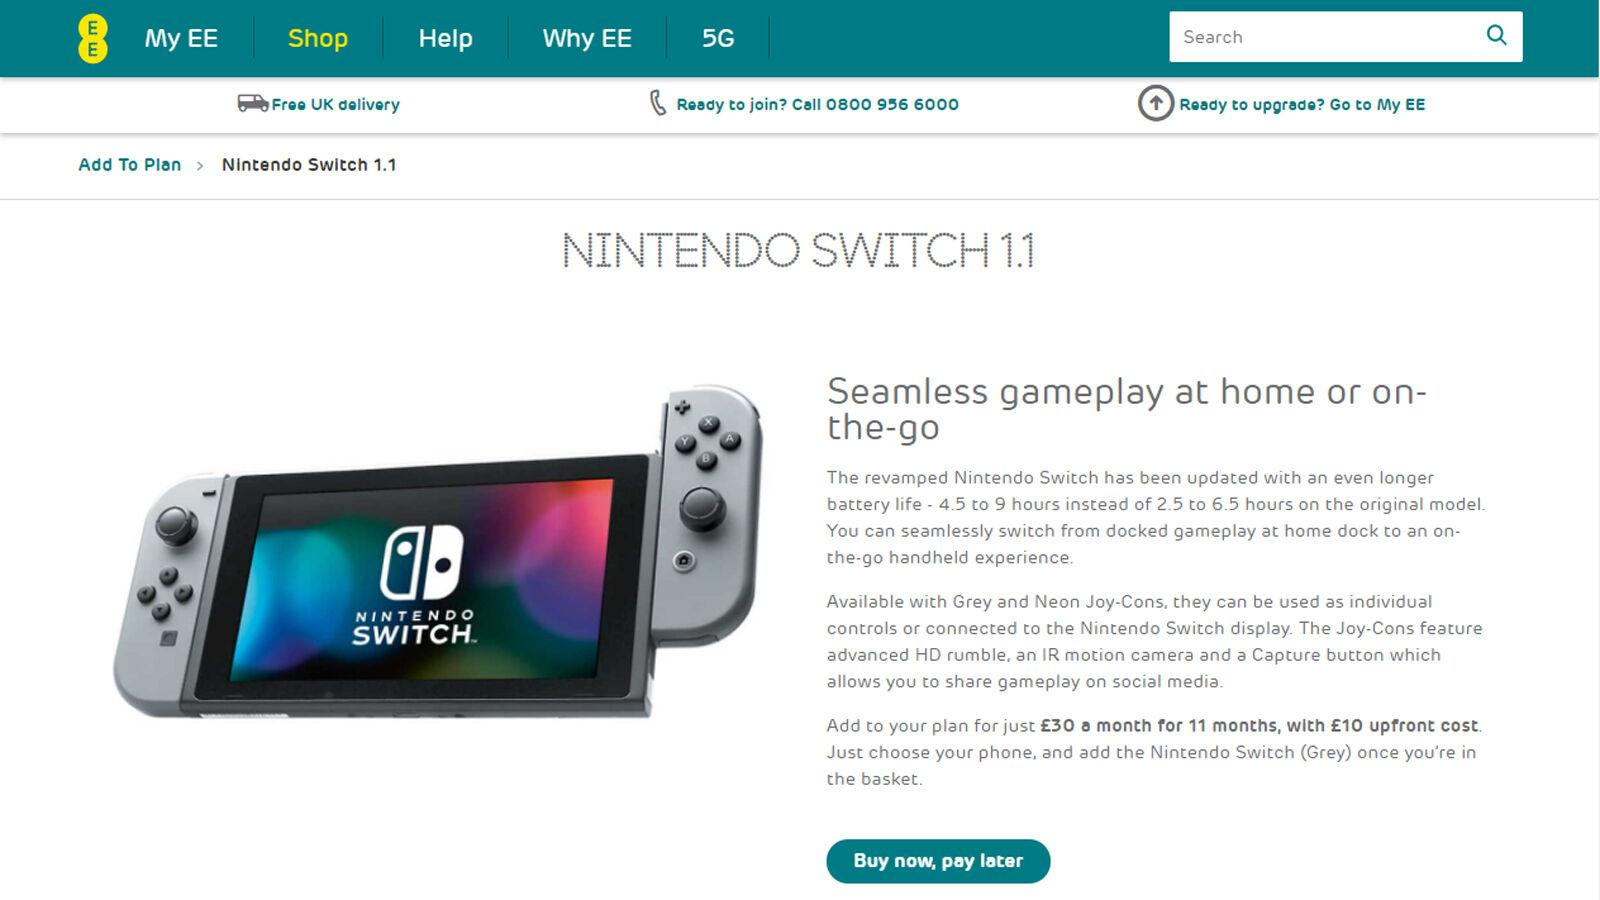 ee_how_to_get_free_nintendo_switch_with_iphone_thumb